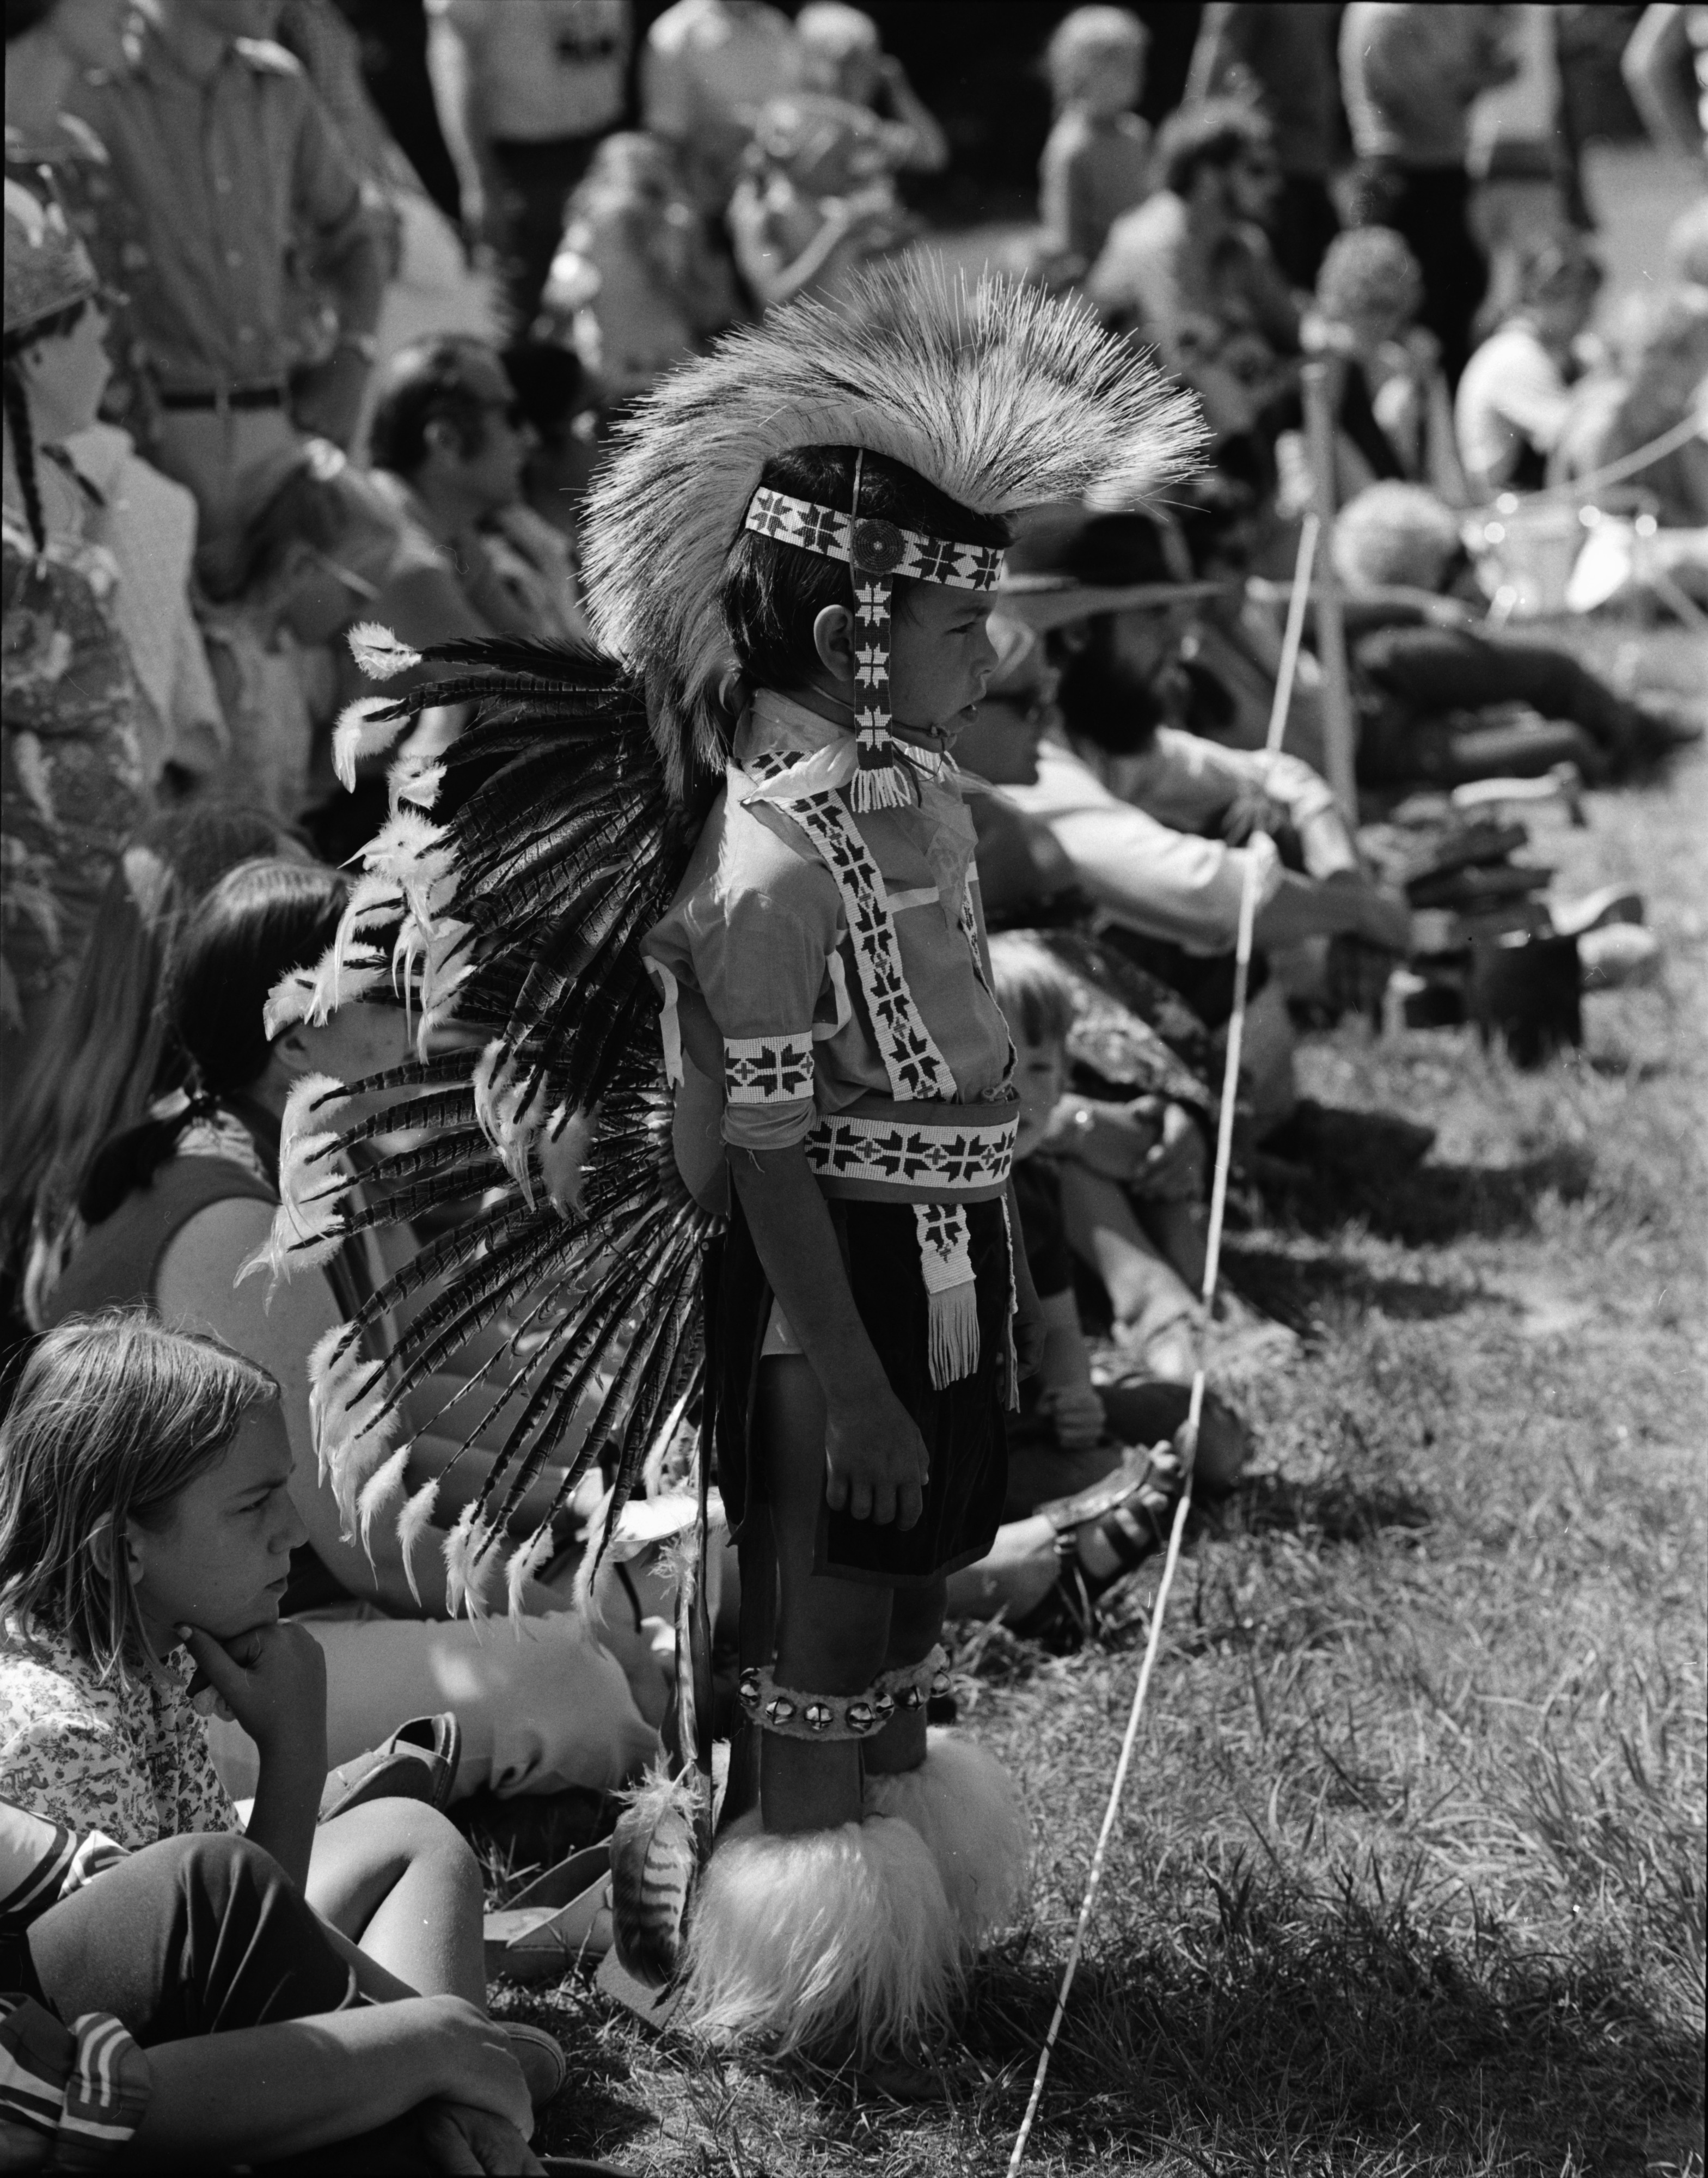 Young boy, Michigan Indian Powwow, Knights of Columbus Park, Dexter Rd., August 1971 image